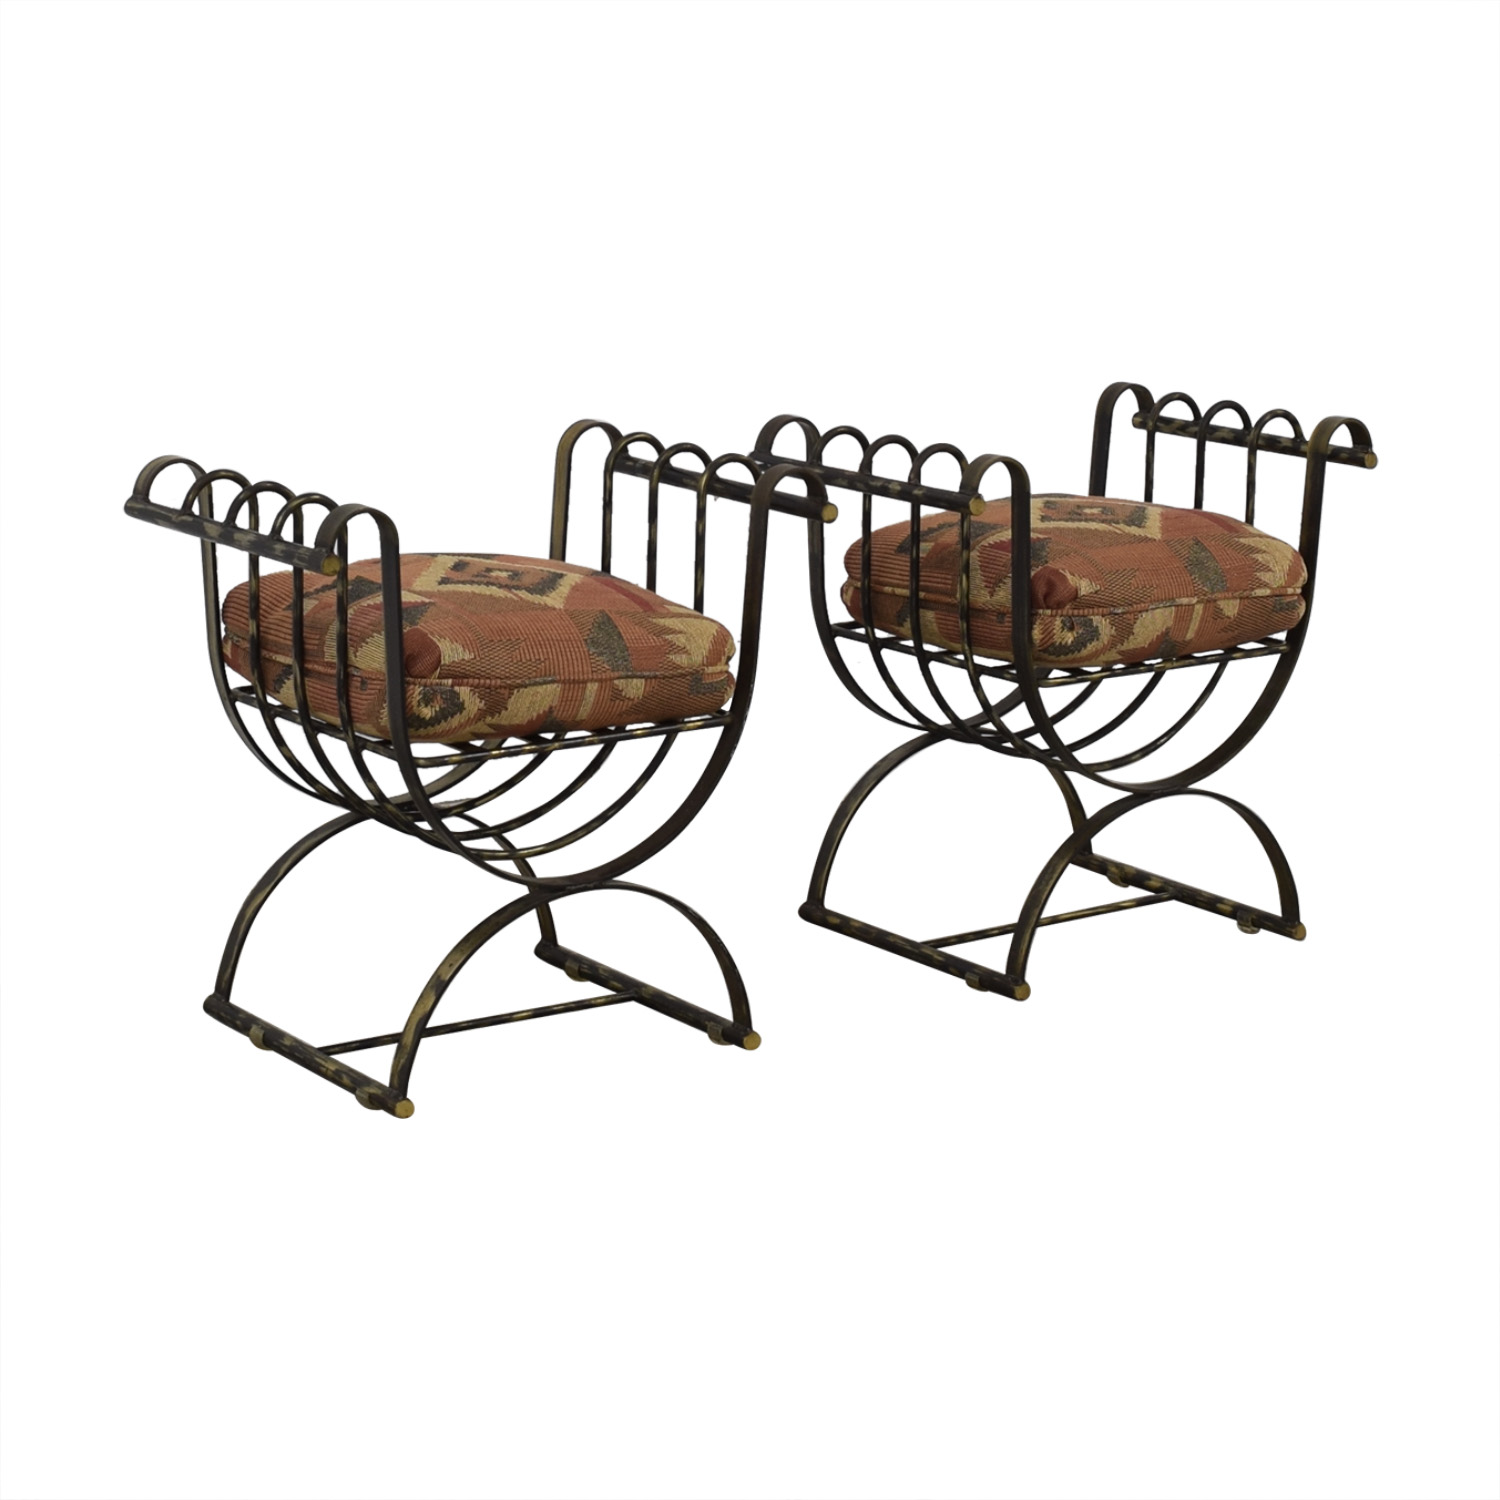 Wrought Iron Decorative Seats / Accent Chairs